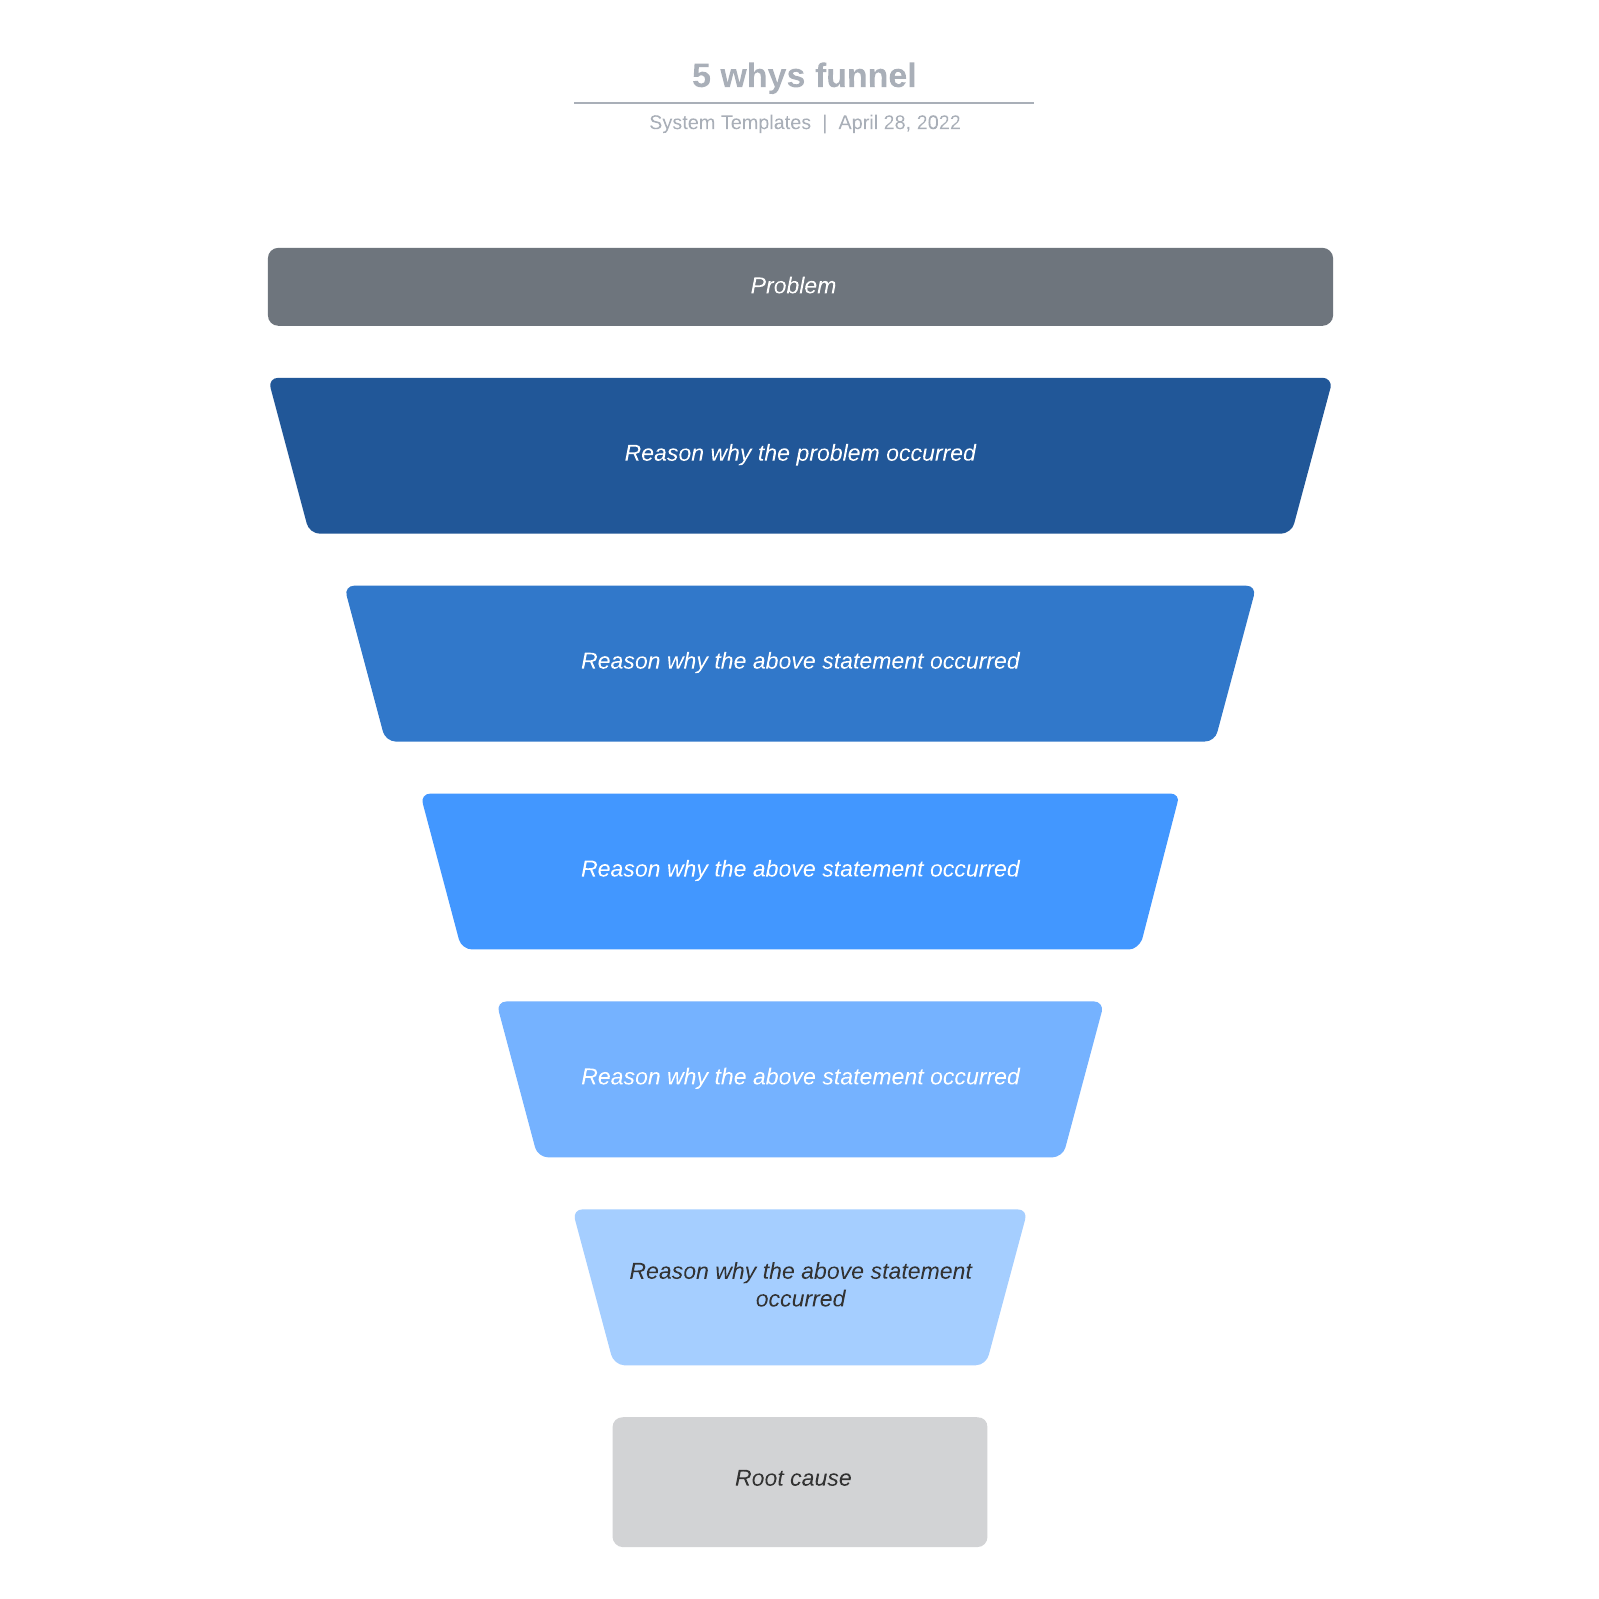 5 whys funnel